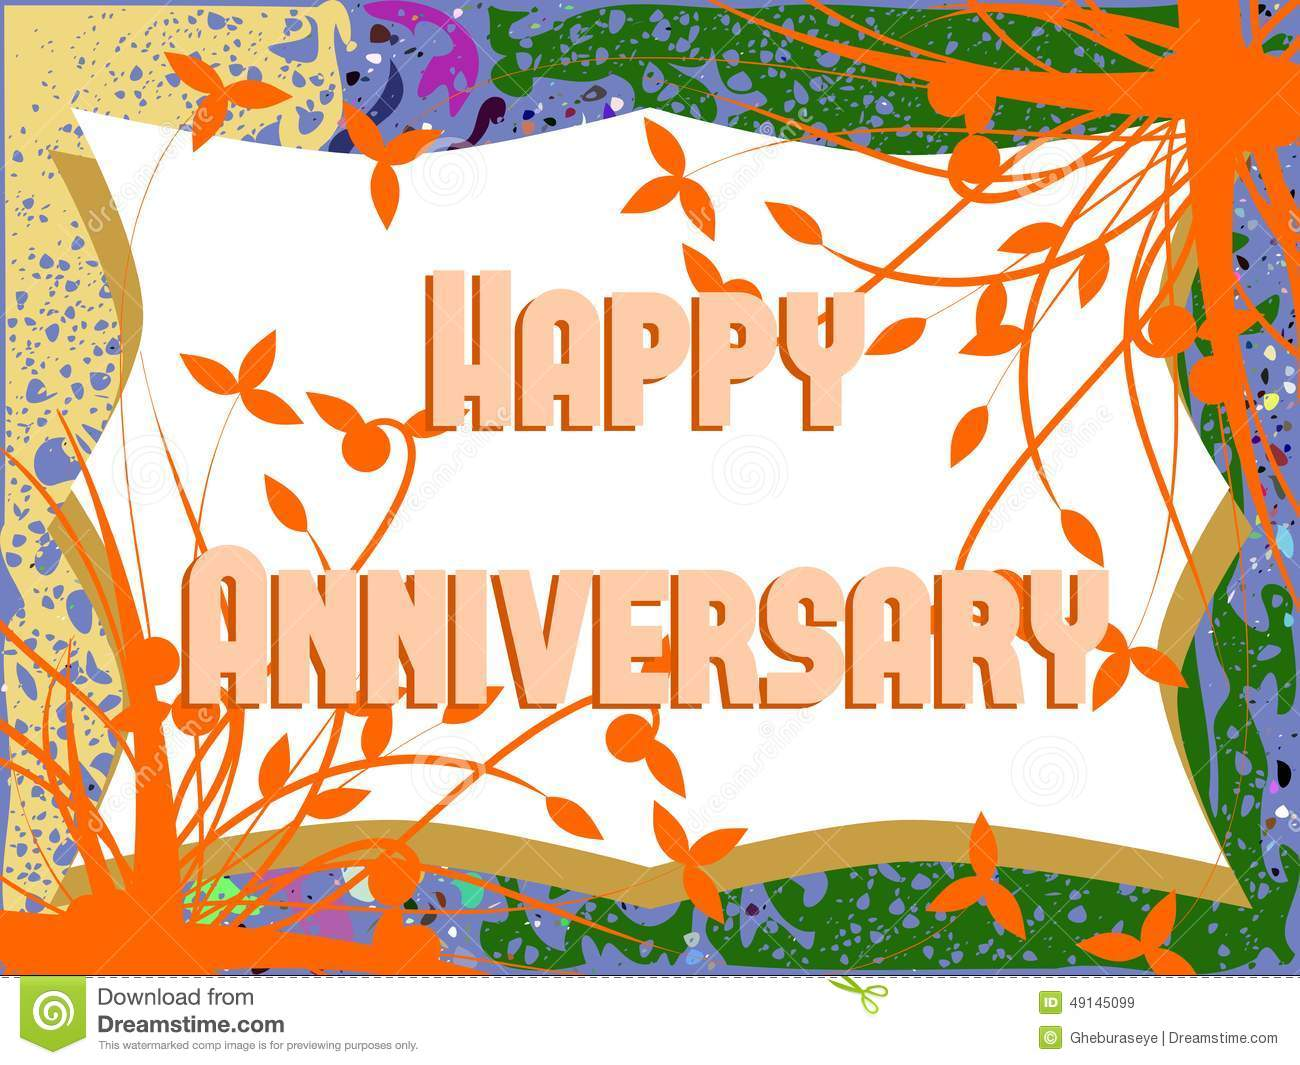 Leaves background clipart happy anniversary clip art transparent stock Happy Anniversary Greeting Card With Leaves Stock Illustration ... clip art transparent stock